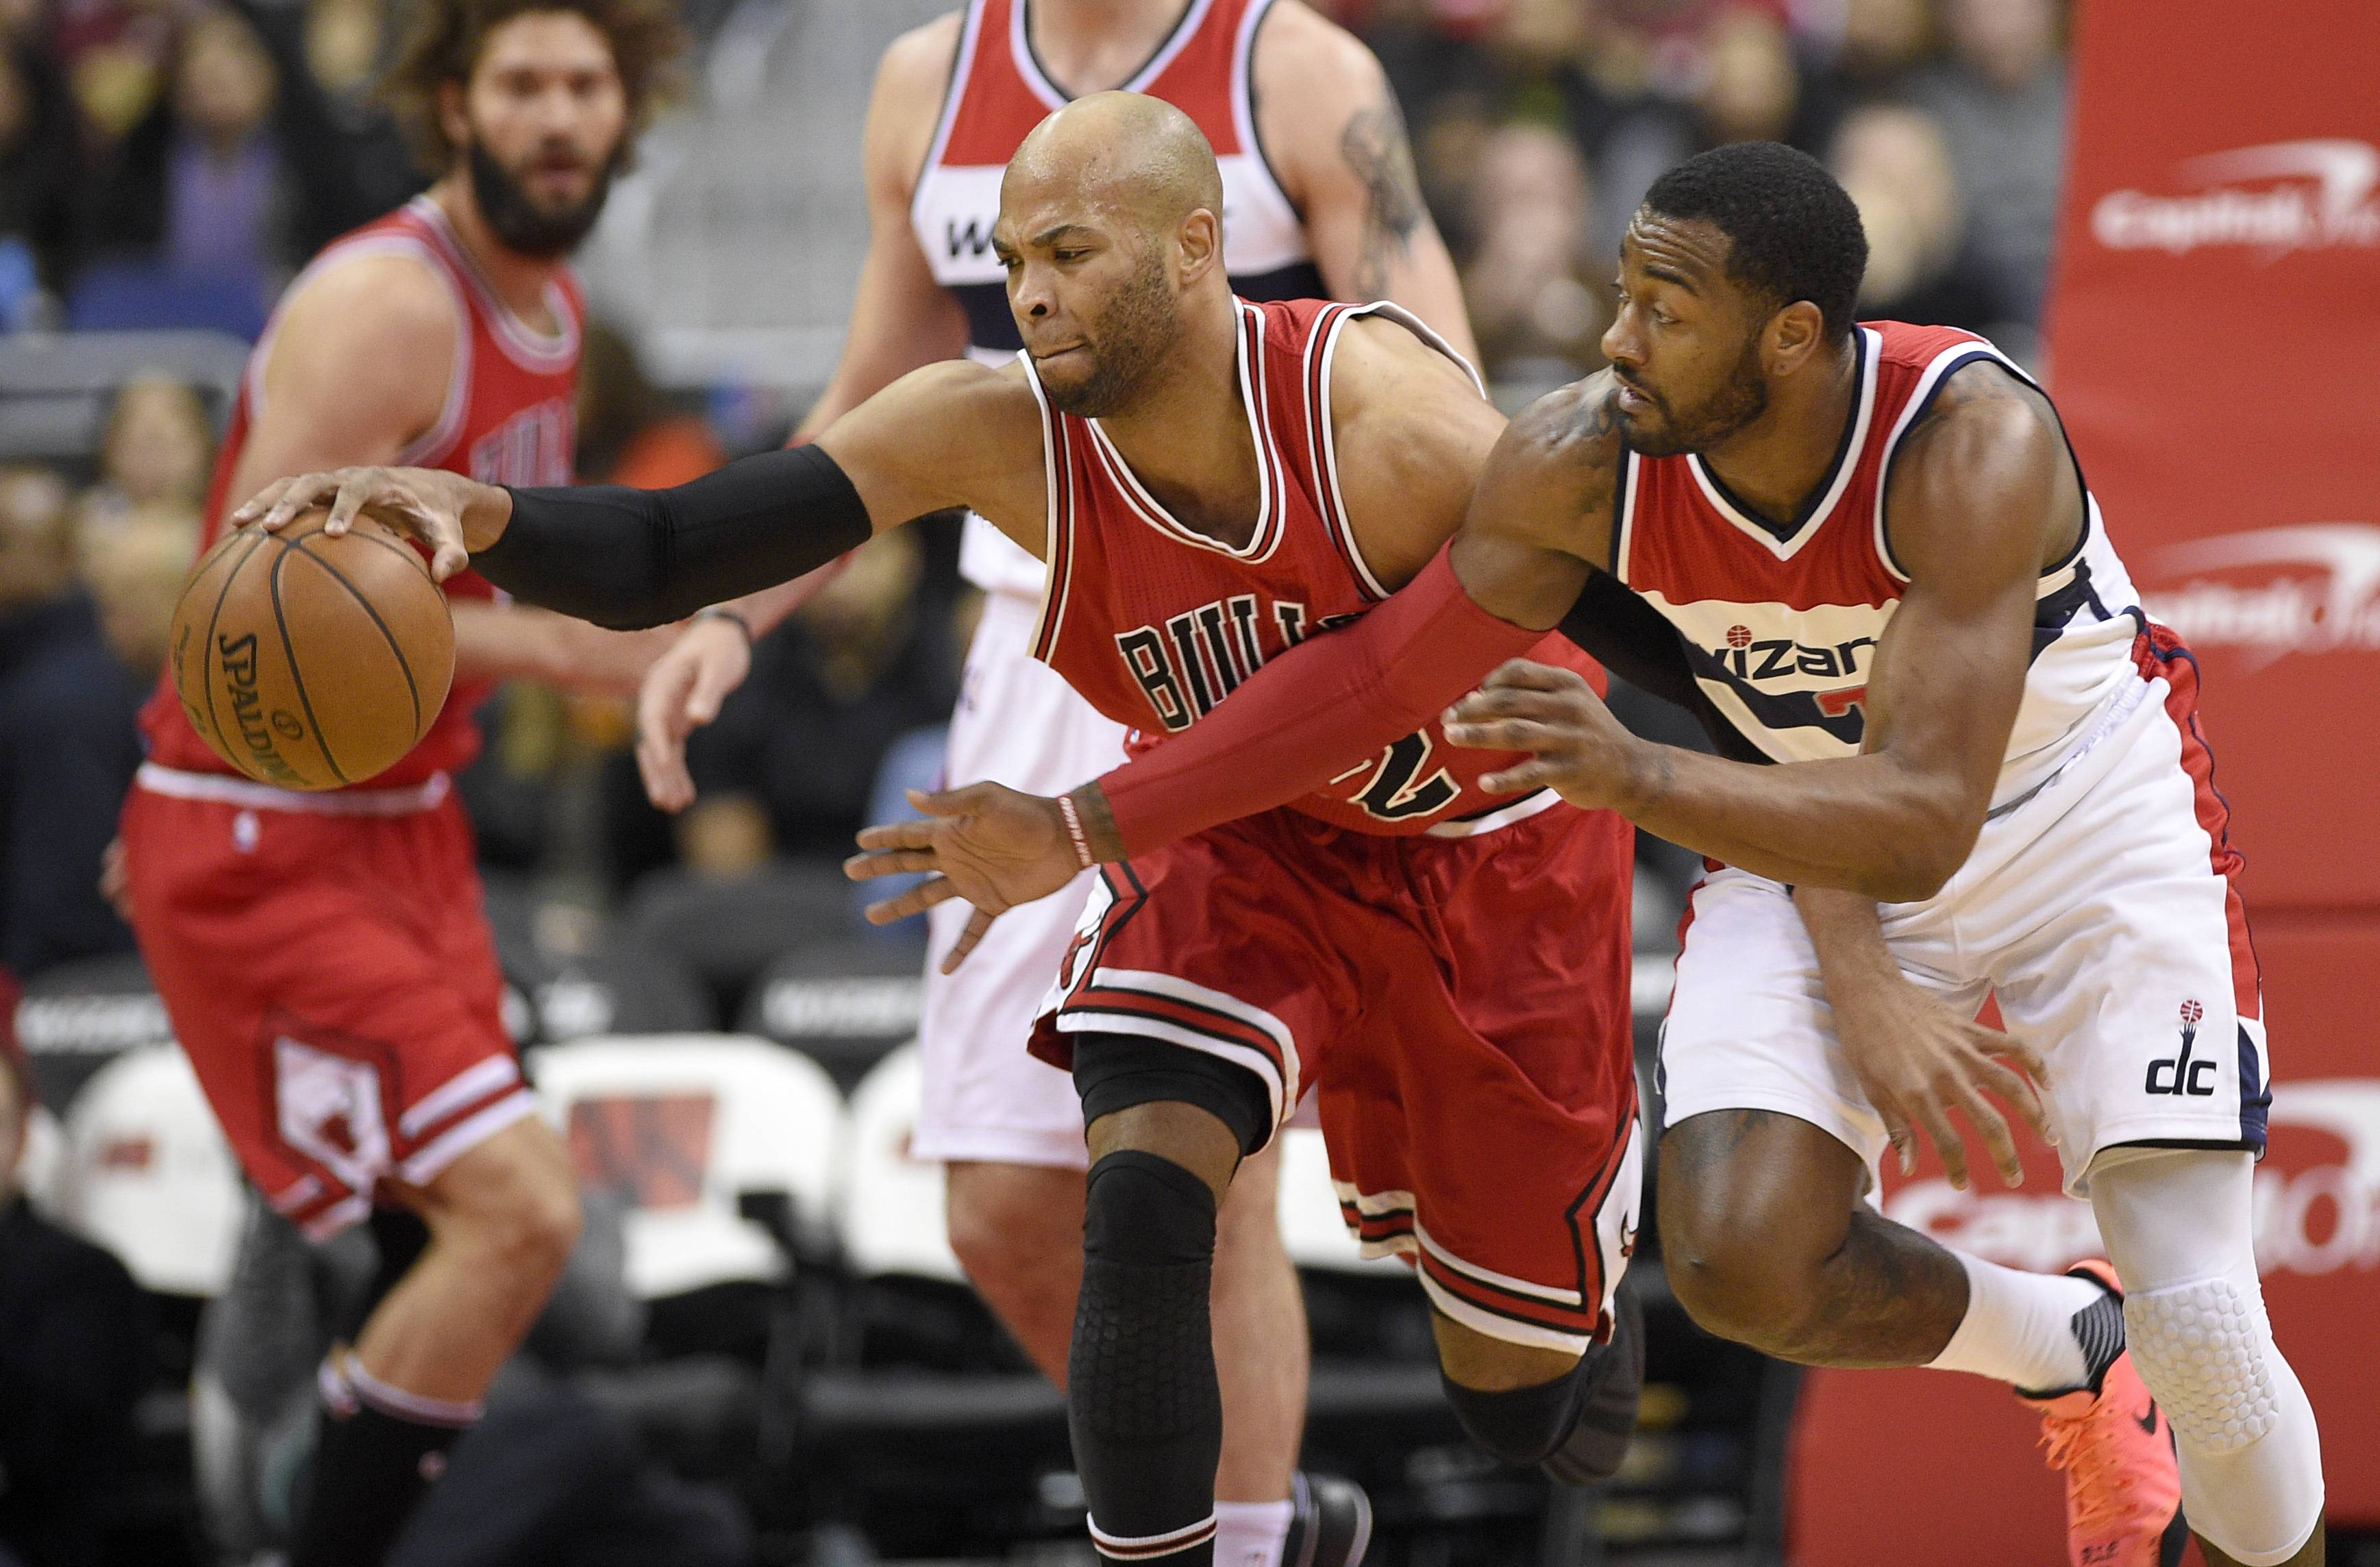 Washington Wizards guard John Wall, right, battles for the ball against Chicago Bulls forward Taj Gibson, left, during the first half of an NBA basketball game, Tuesday, Jan. 10, 2017, in Washington. (AP Photo/Nick Wass)